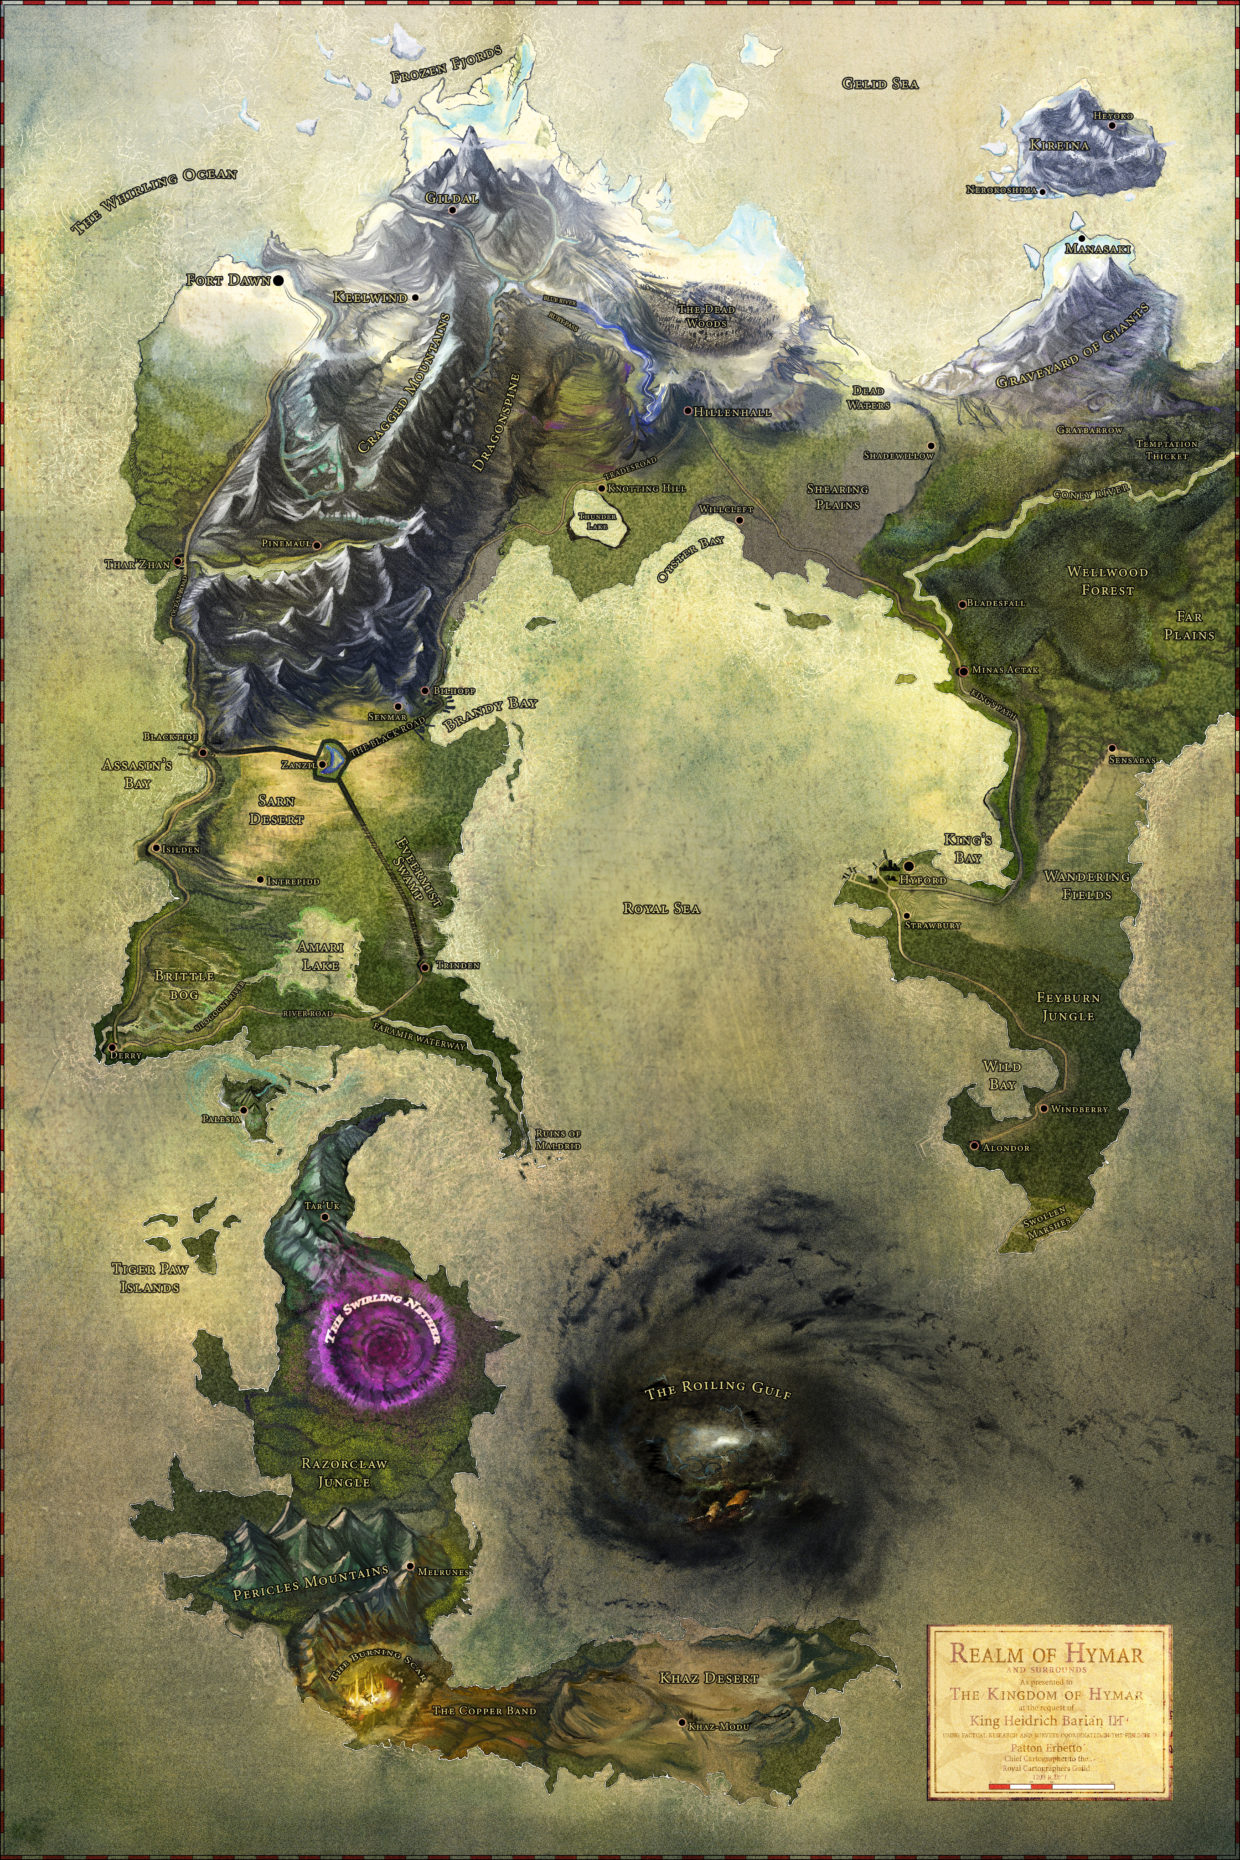 Poster Of The World World Of Hymar Dungeons And Dragons Campaign Fully Rendered